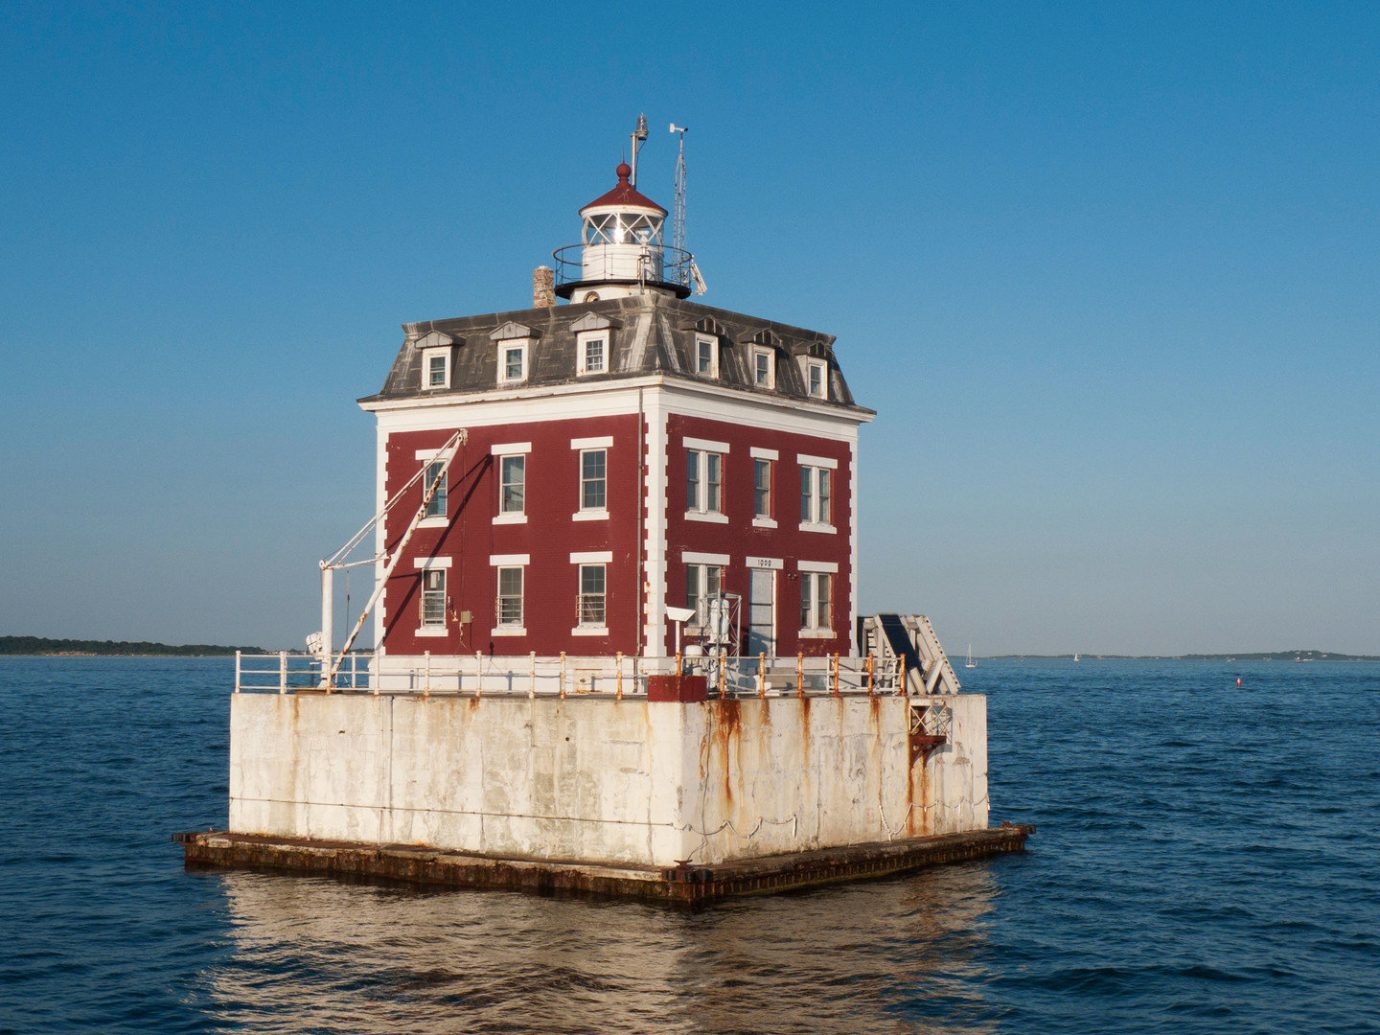 Trip Ideas water sky outdoor Boat tower lighthouse Sea vehicle watercraft ship Ocean channel transport Coast ferry Harbor